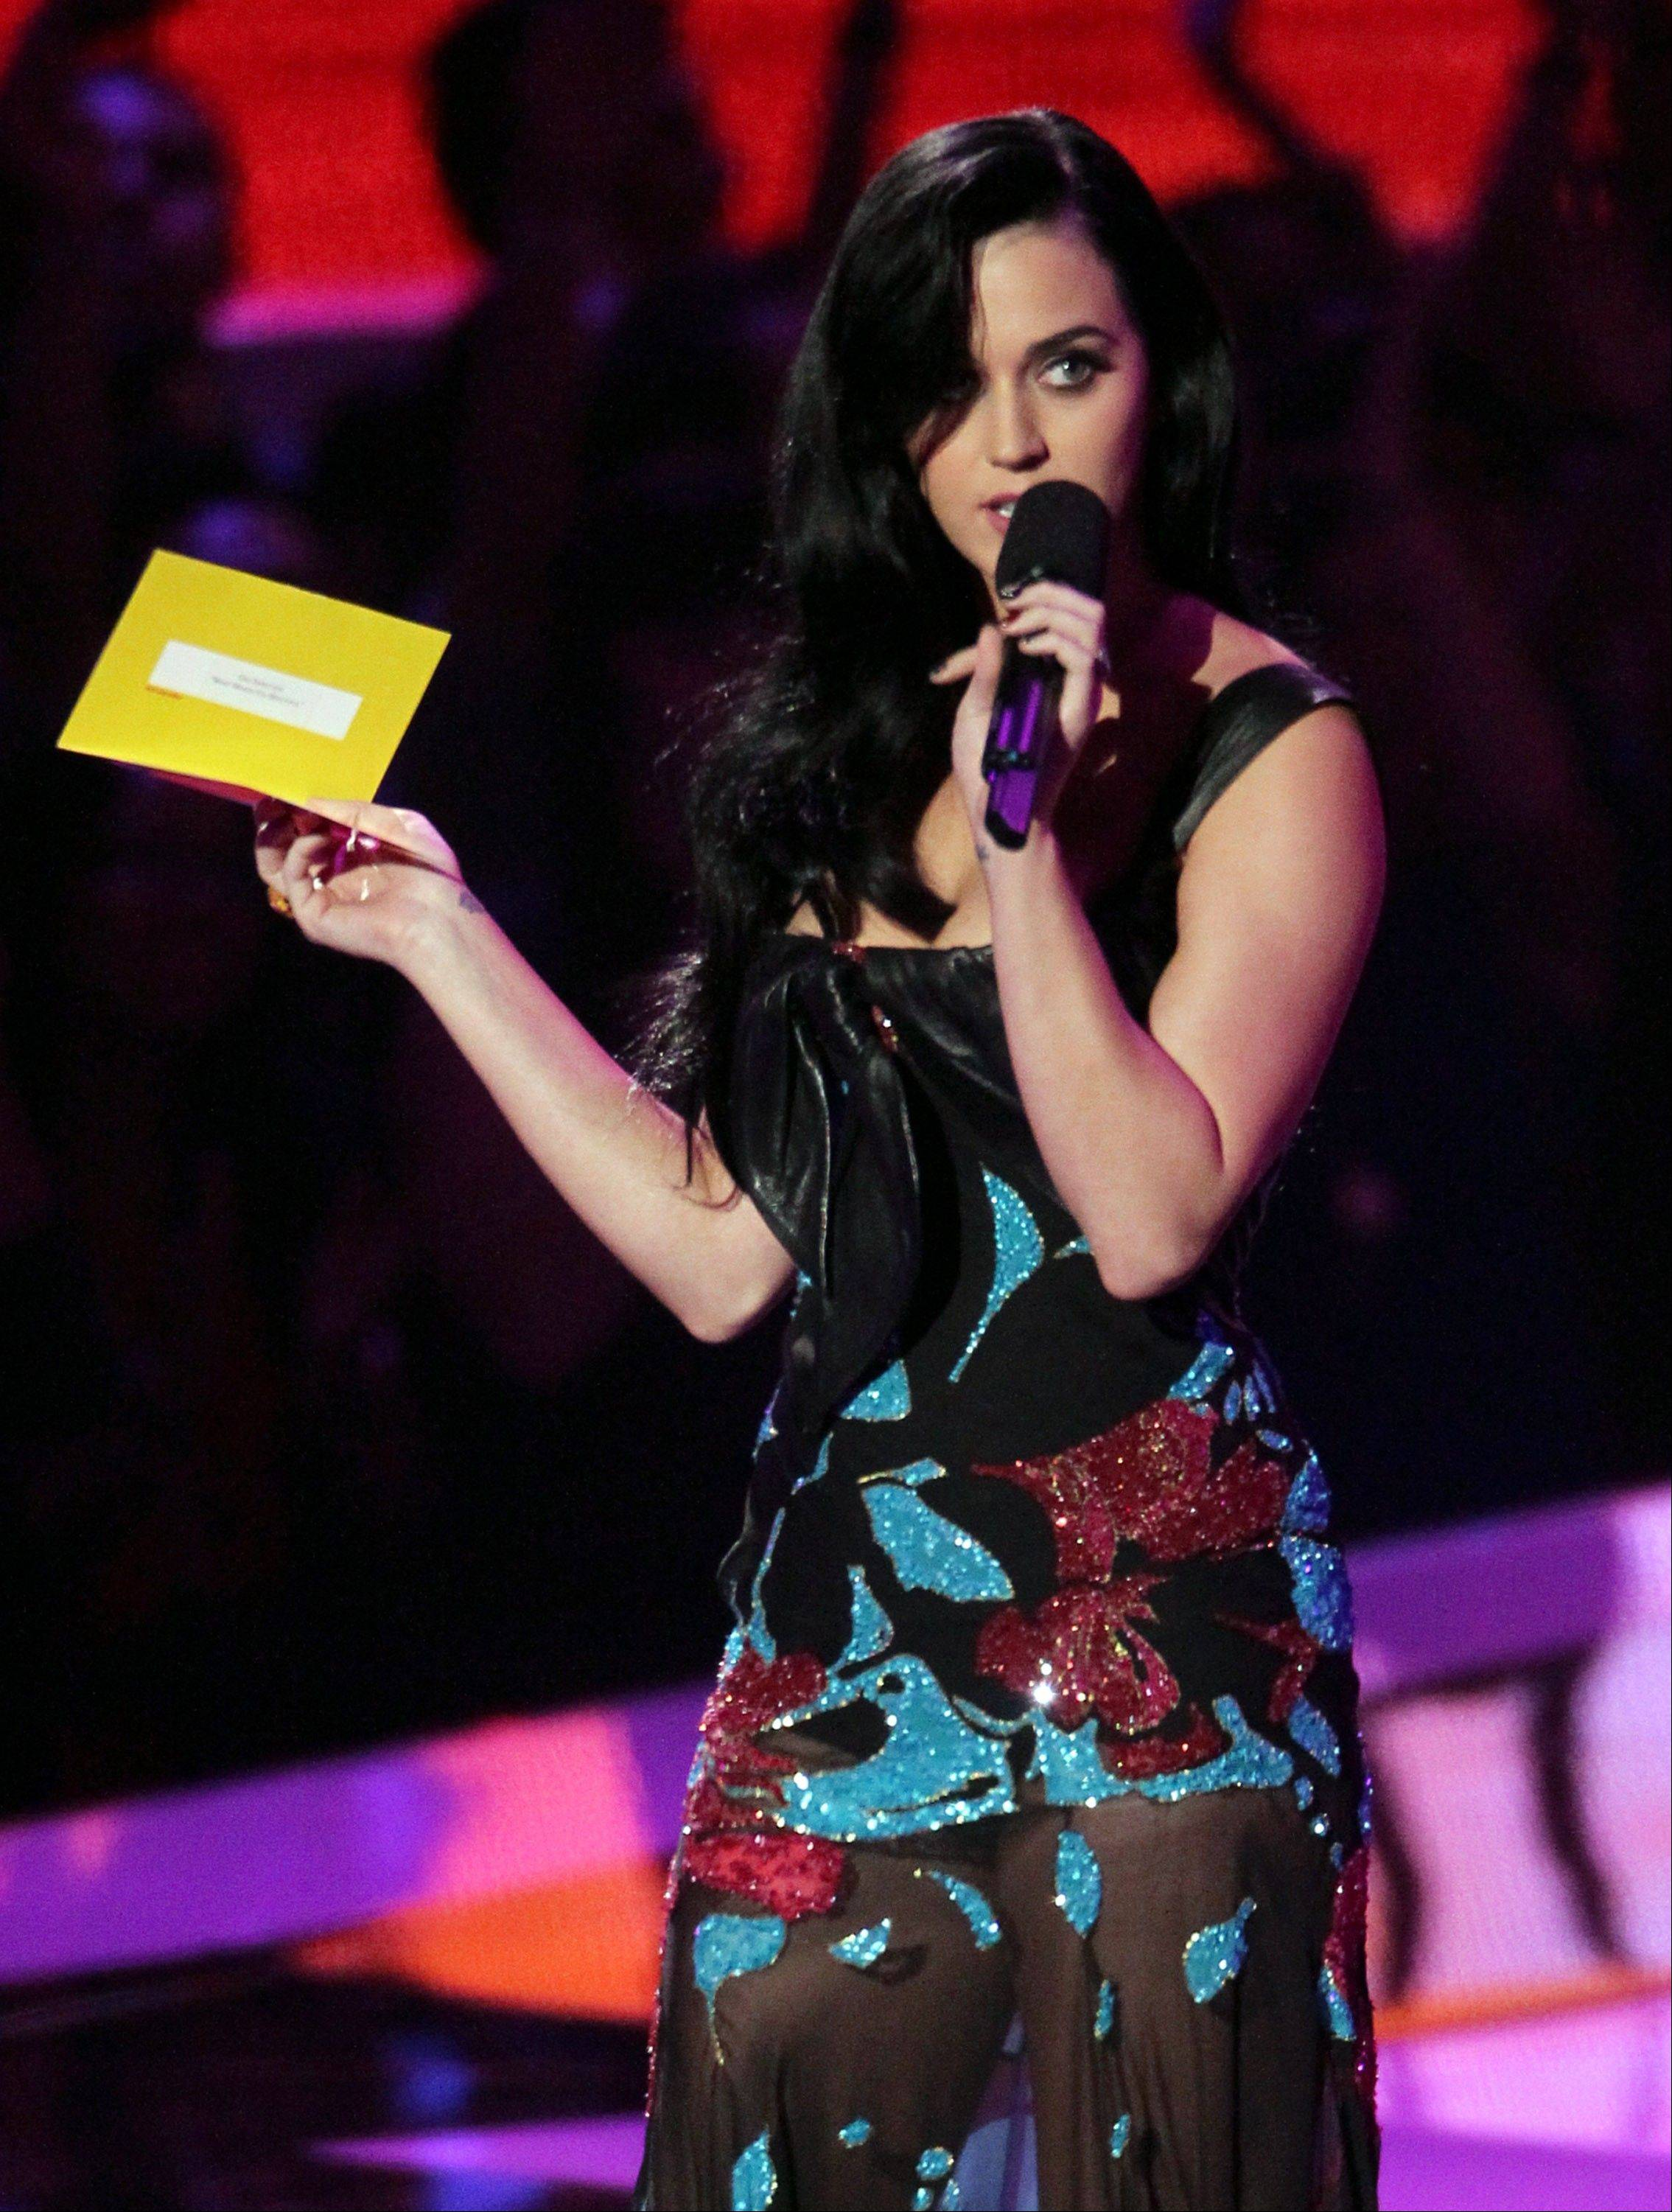 Katy Perry speaks onstage at the MTV Video Music Awards on Thursday, Sept. 6, 2012, in Los Angeles.